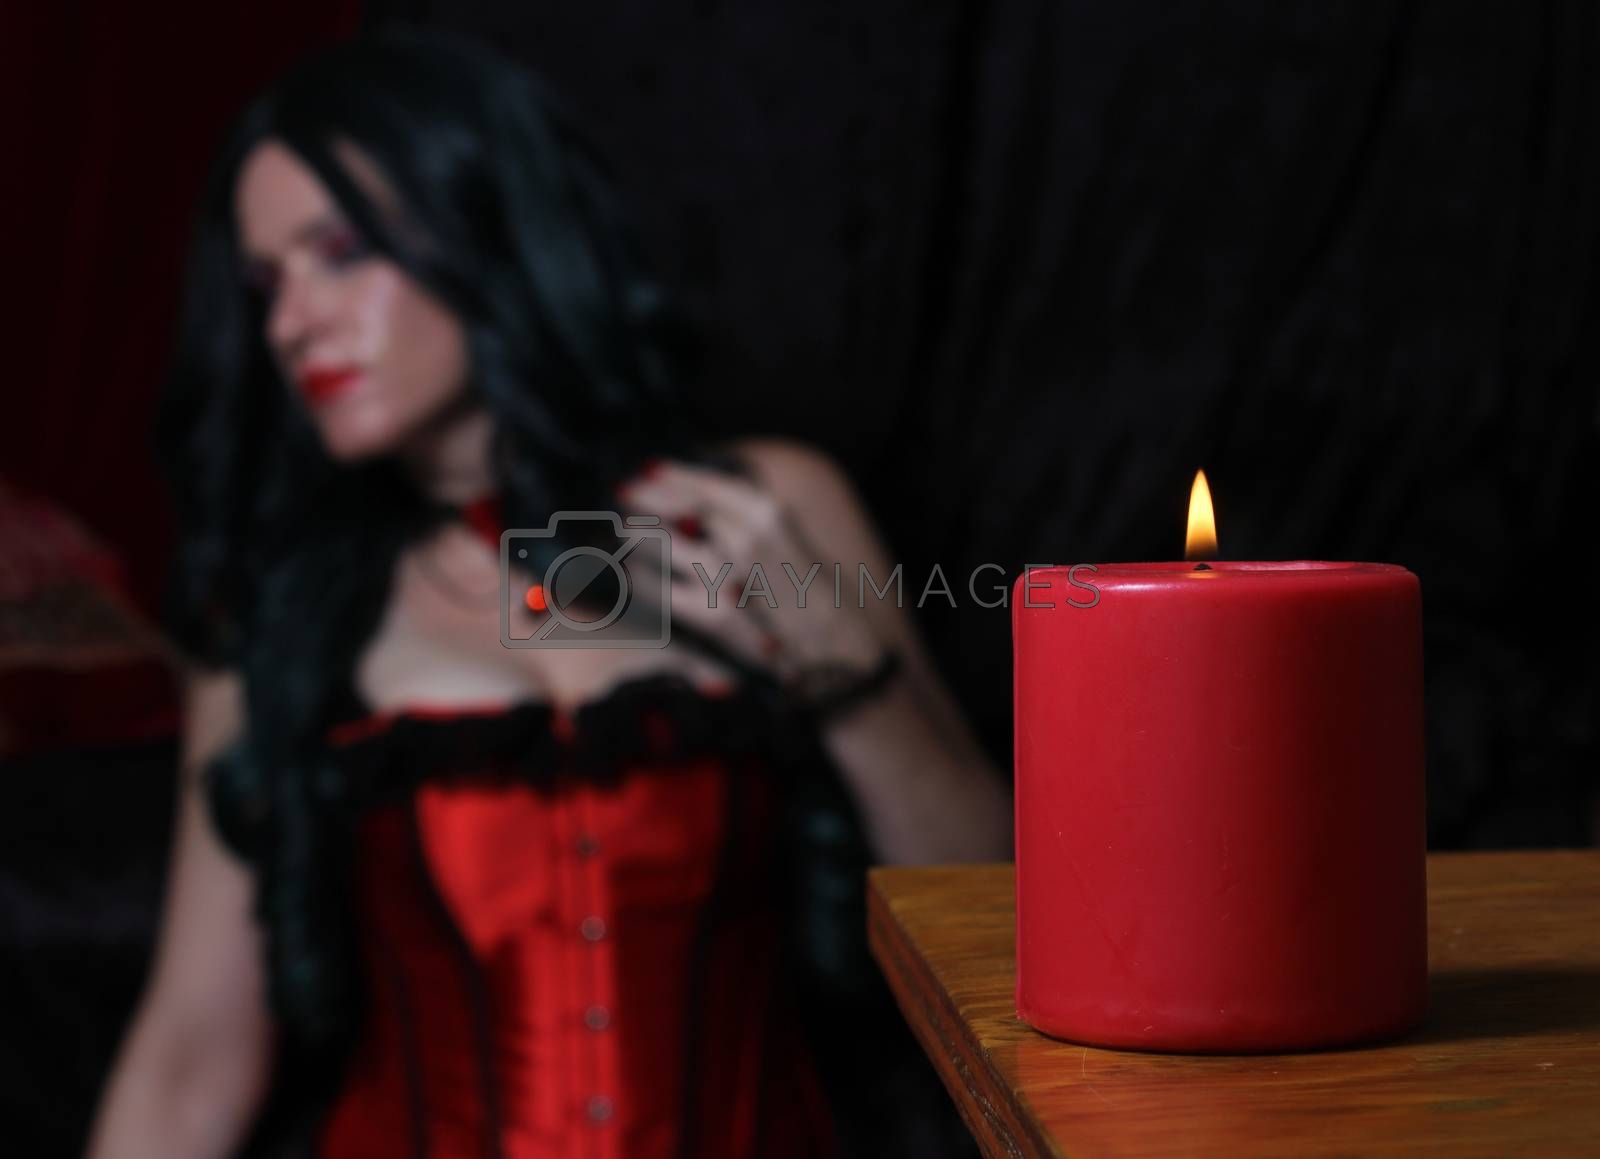 Red Candle With Woman in Red Corset in Background